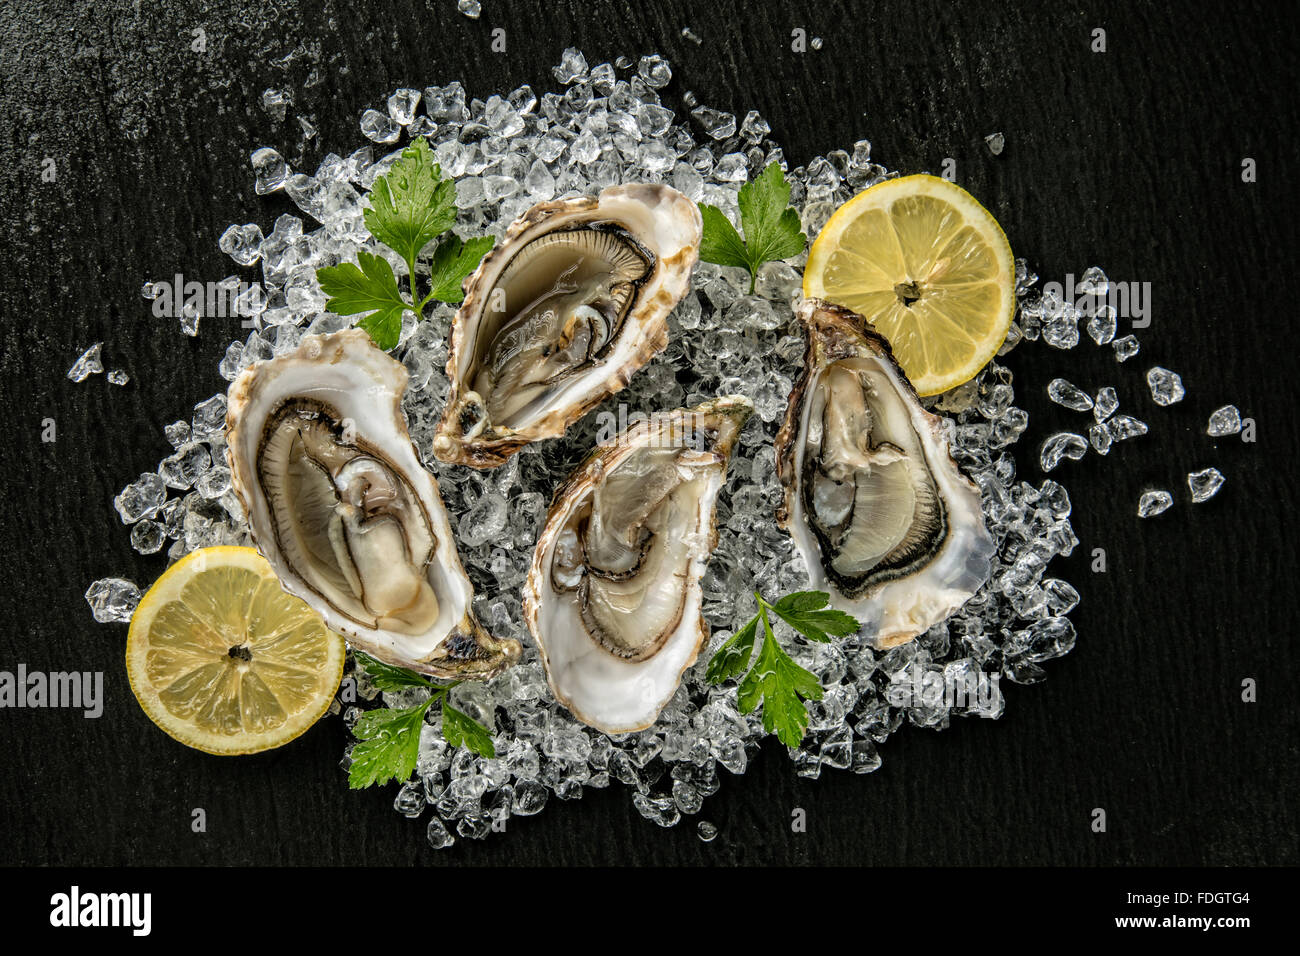 Oysters served on stone plate with ice drift - Stock Image